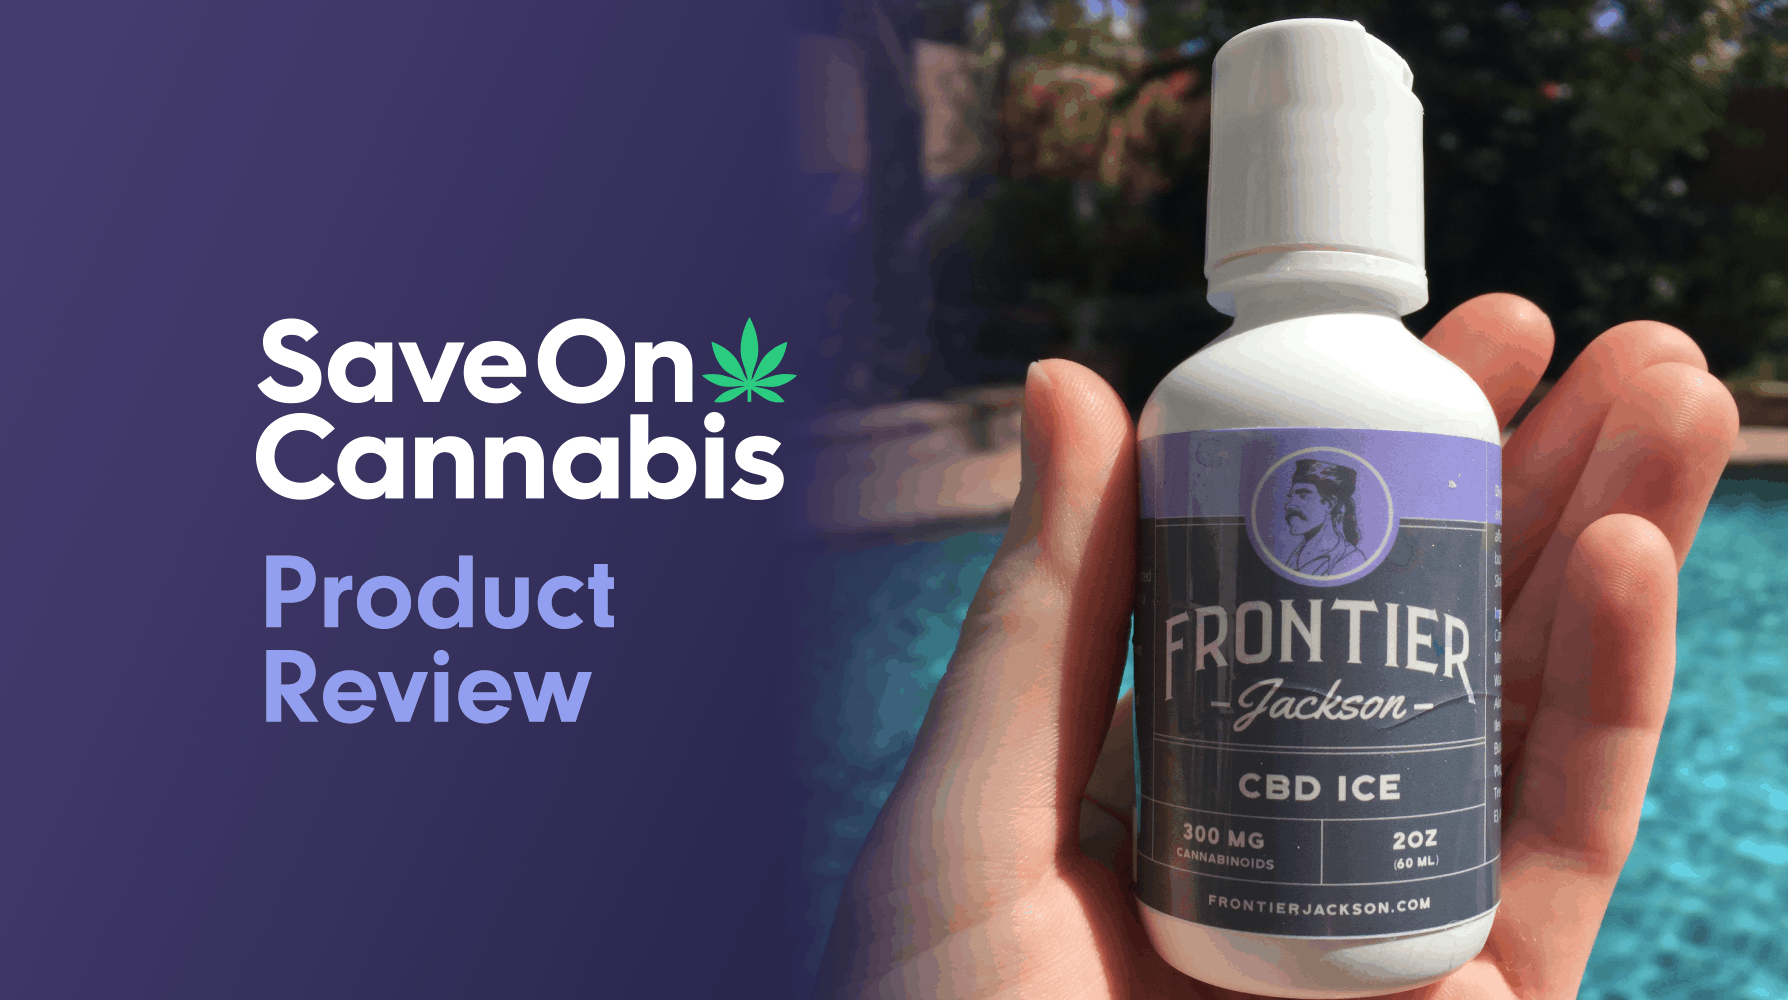 Cannabis Product Reviews cover image